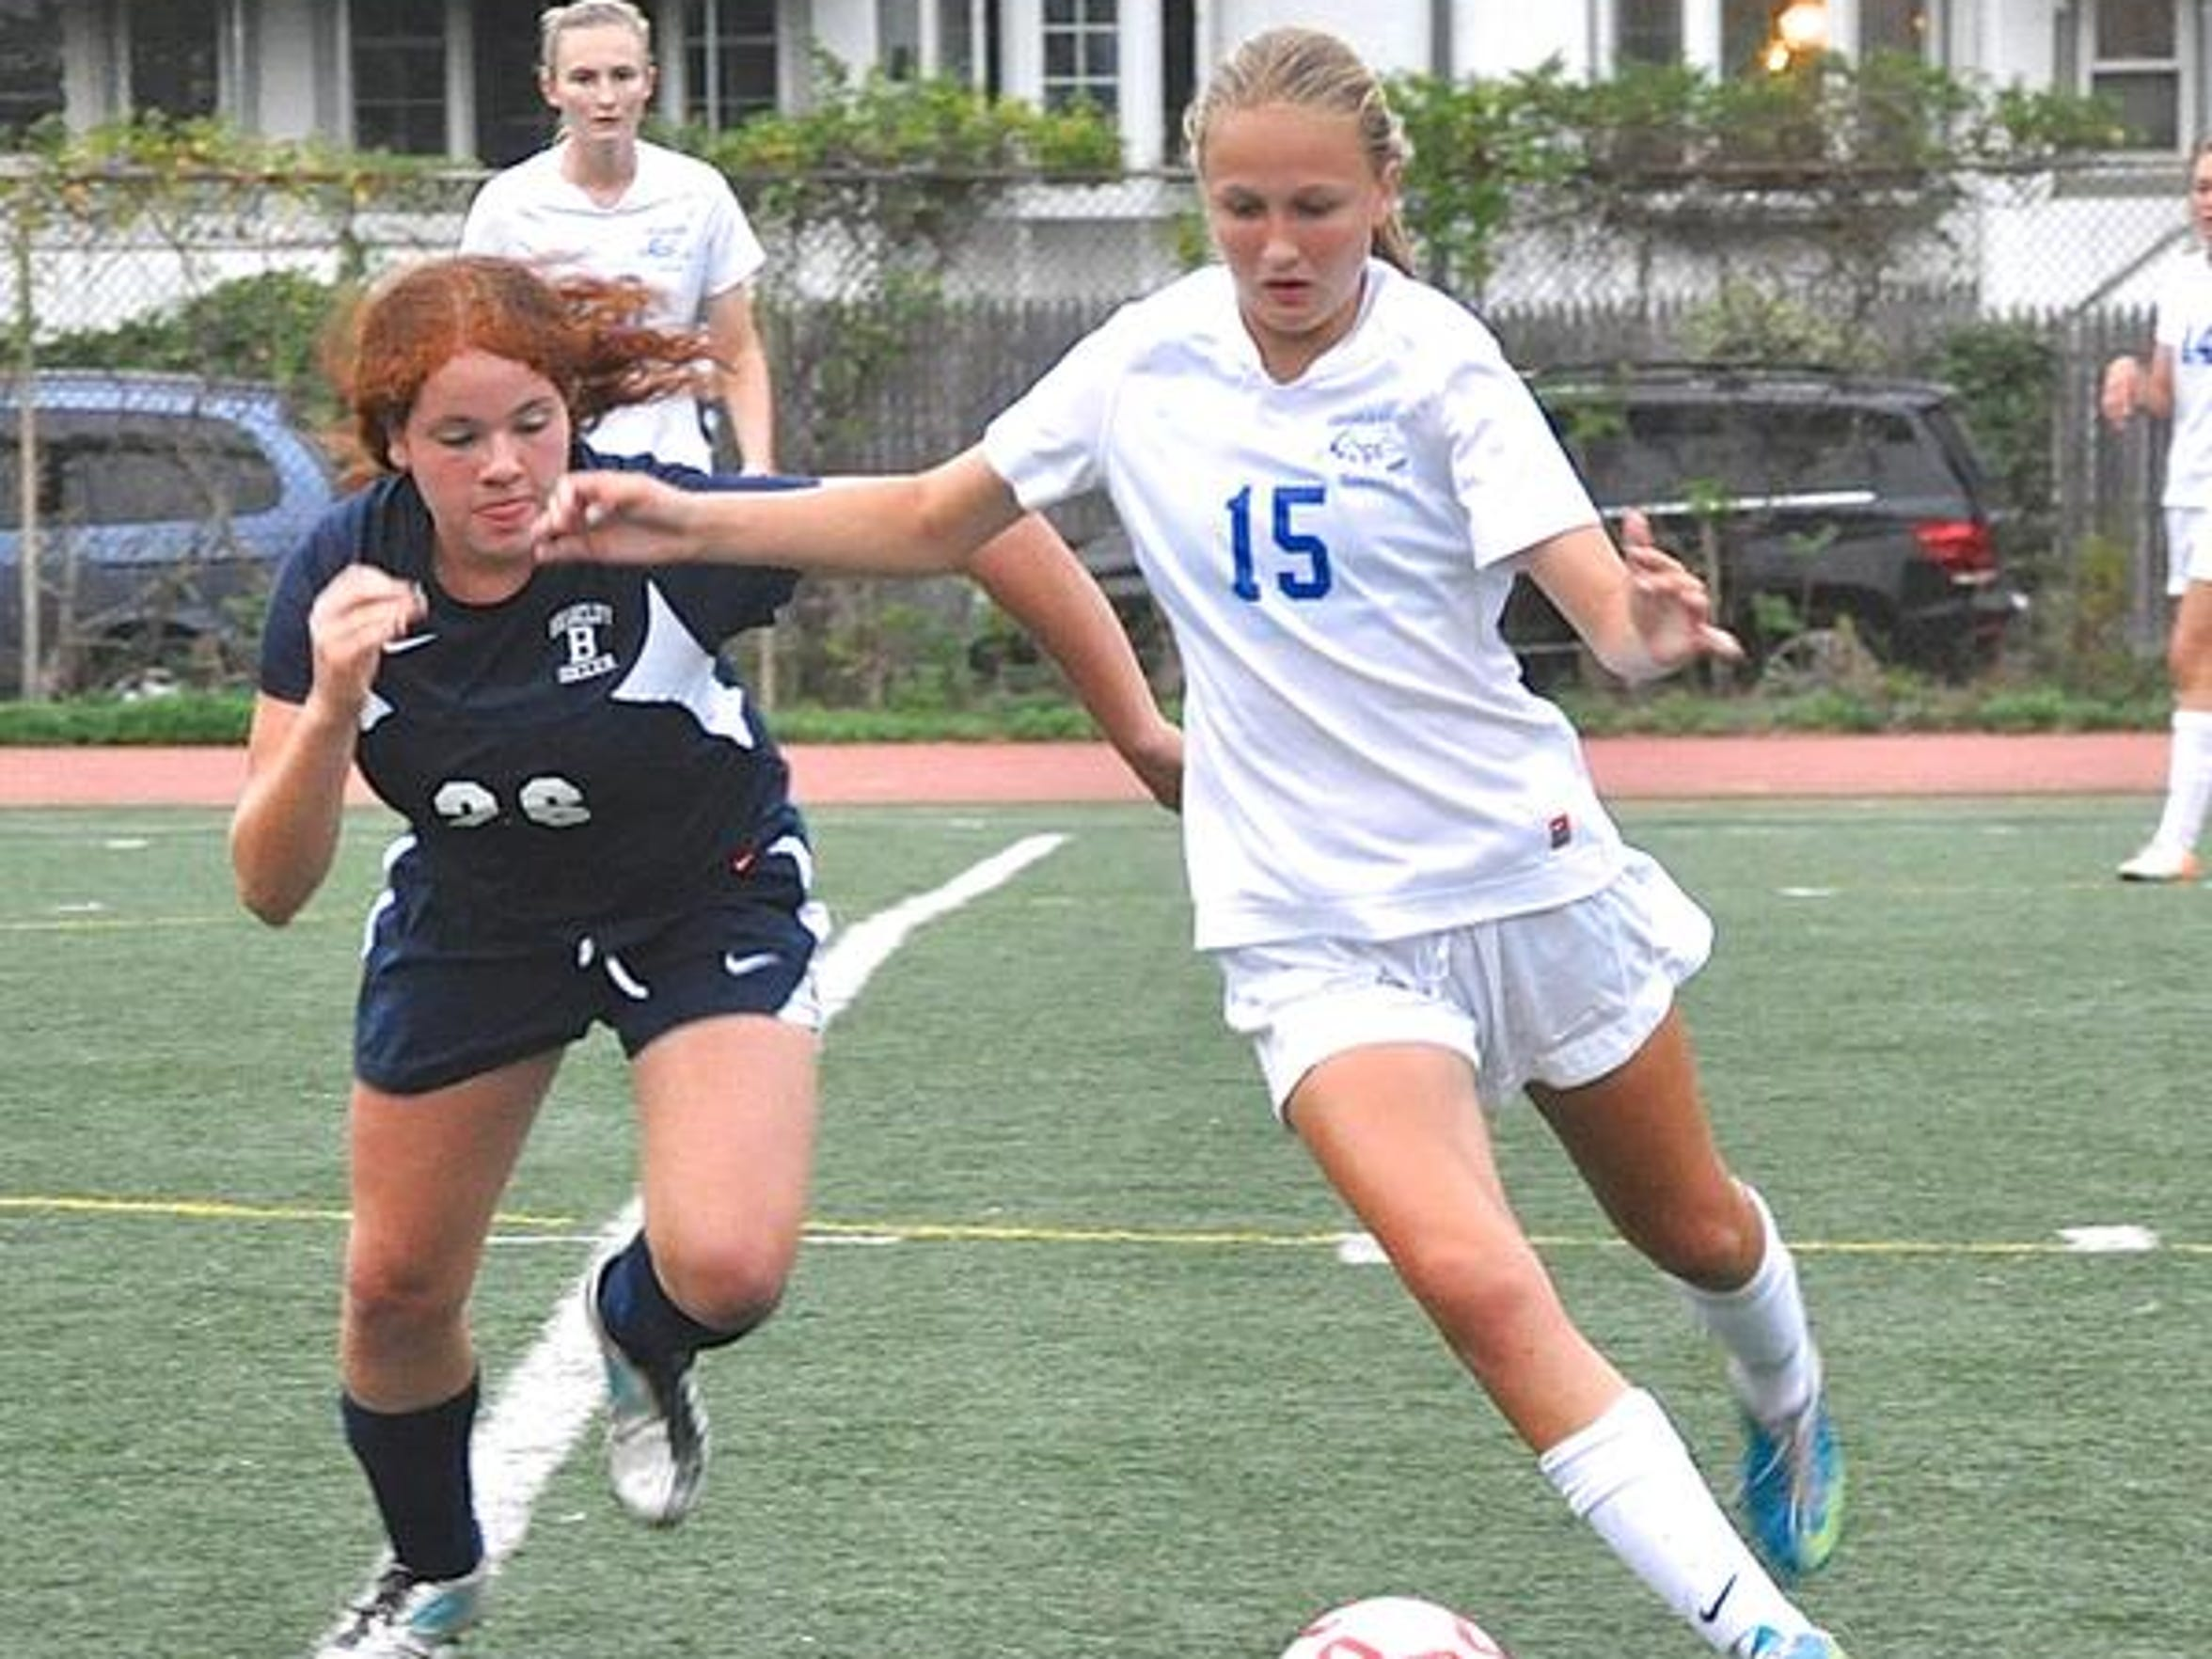 Briarcliff's Elizabeth Kreppel (left) defends against